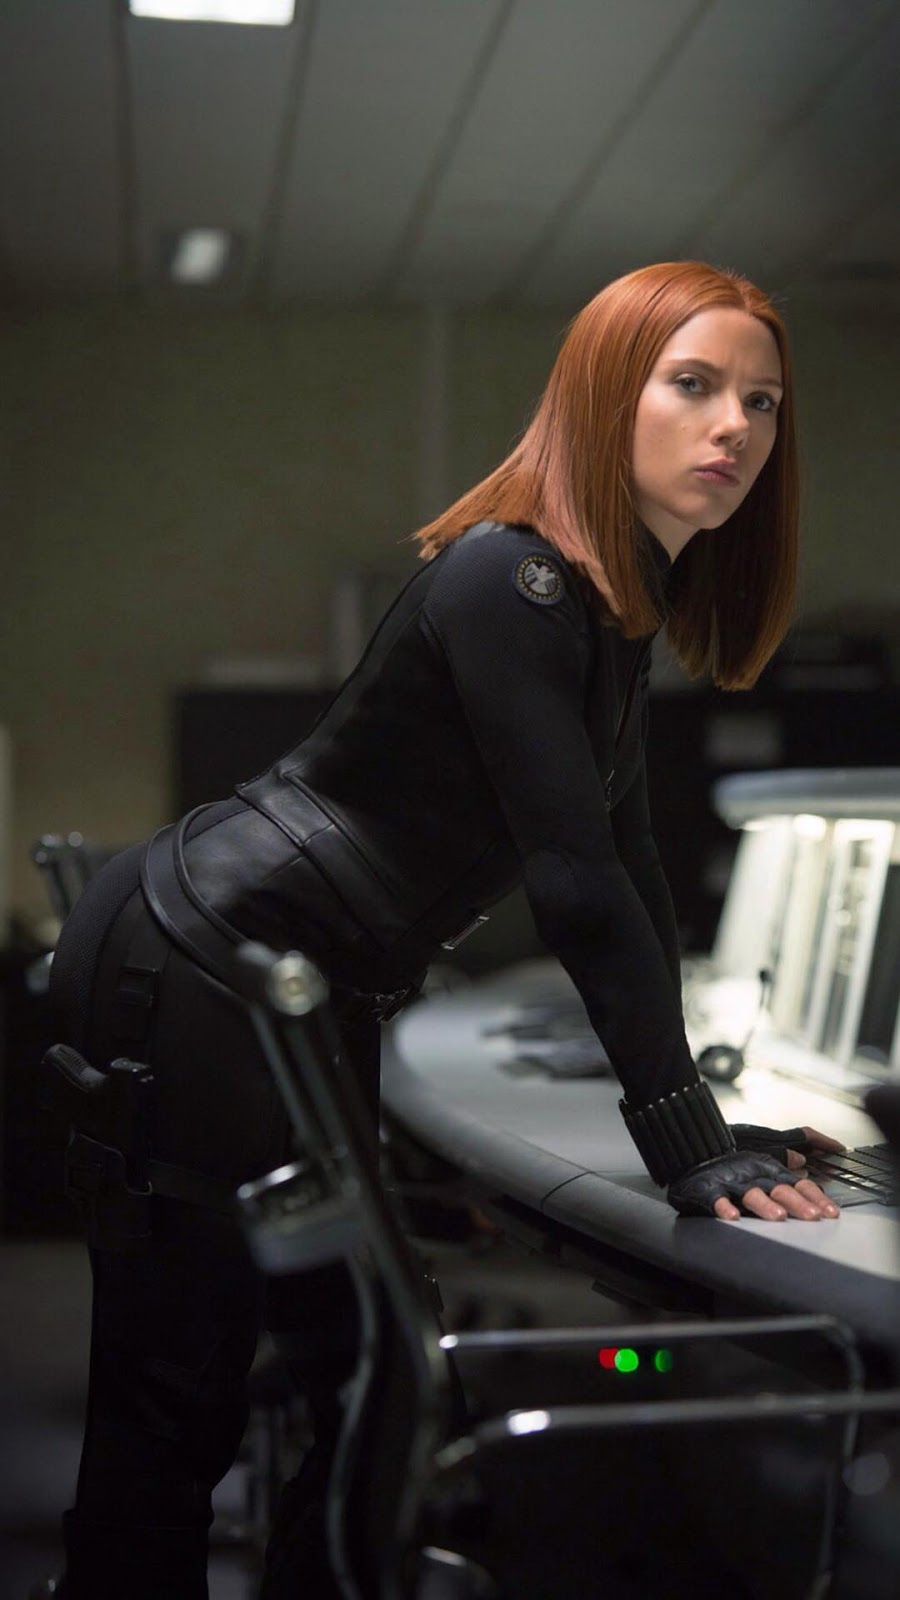 Black Widow Mobile Wallpaper Avenger Balck Dress